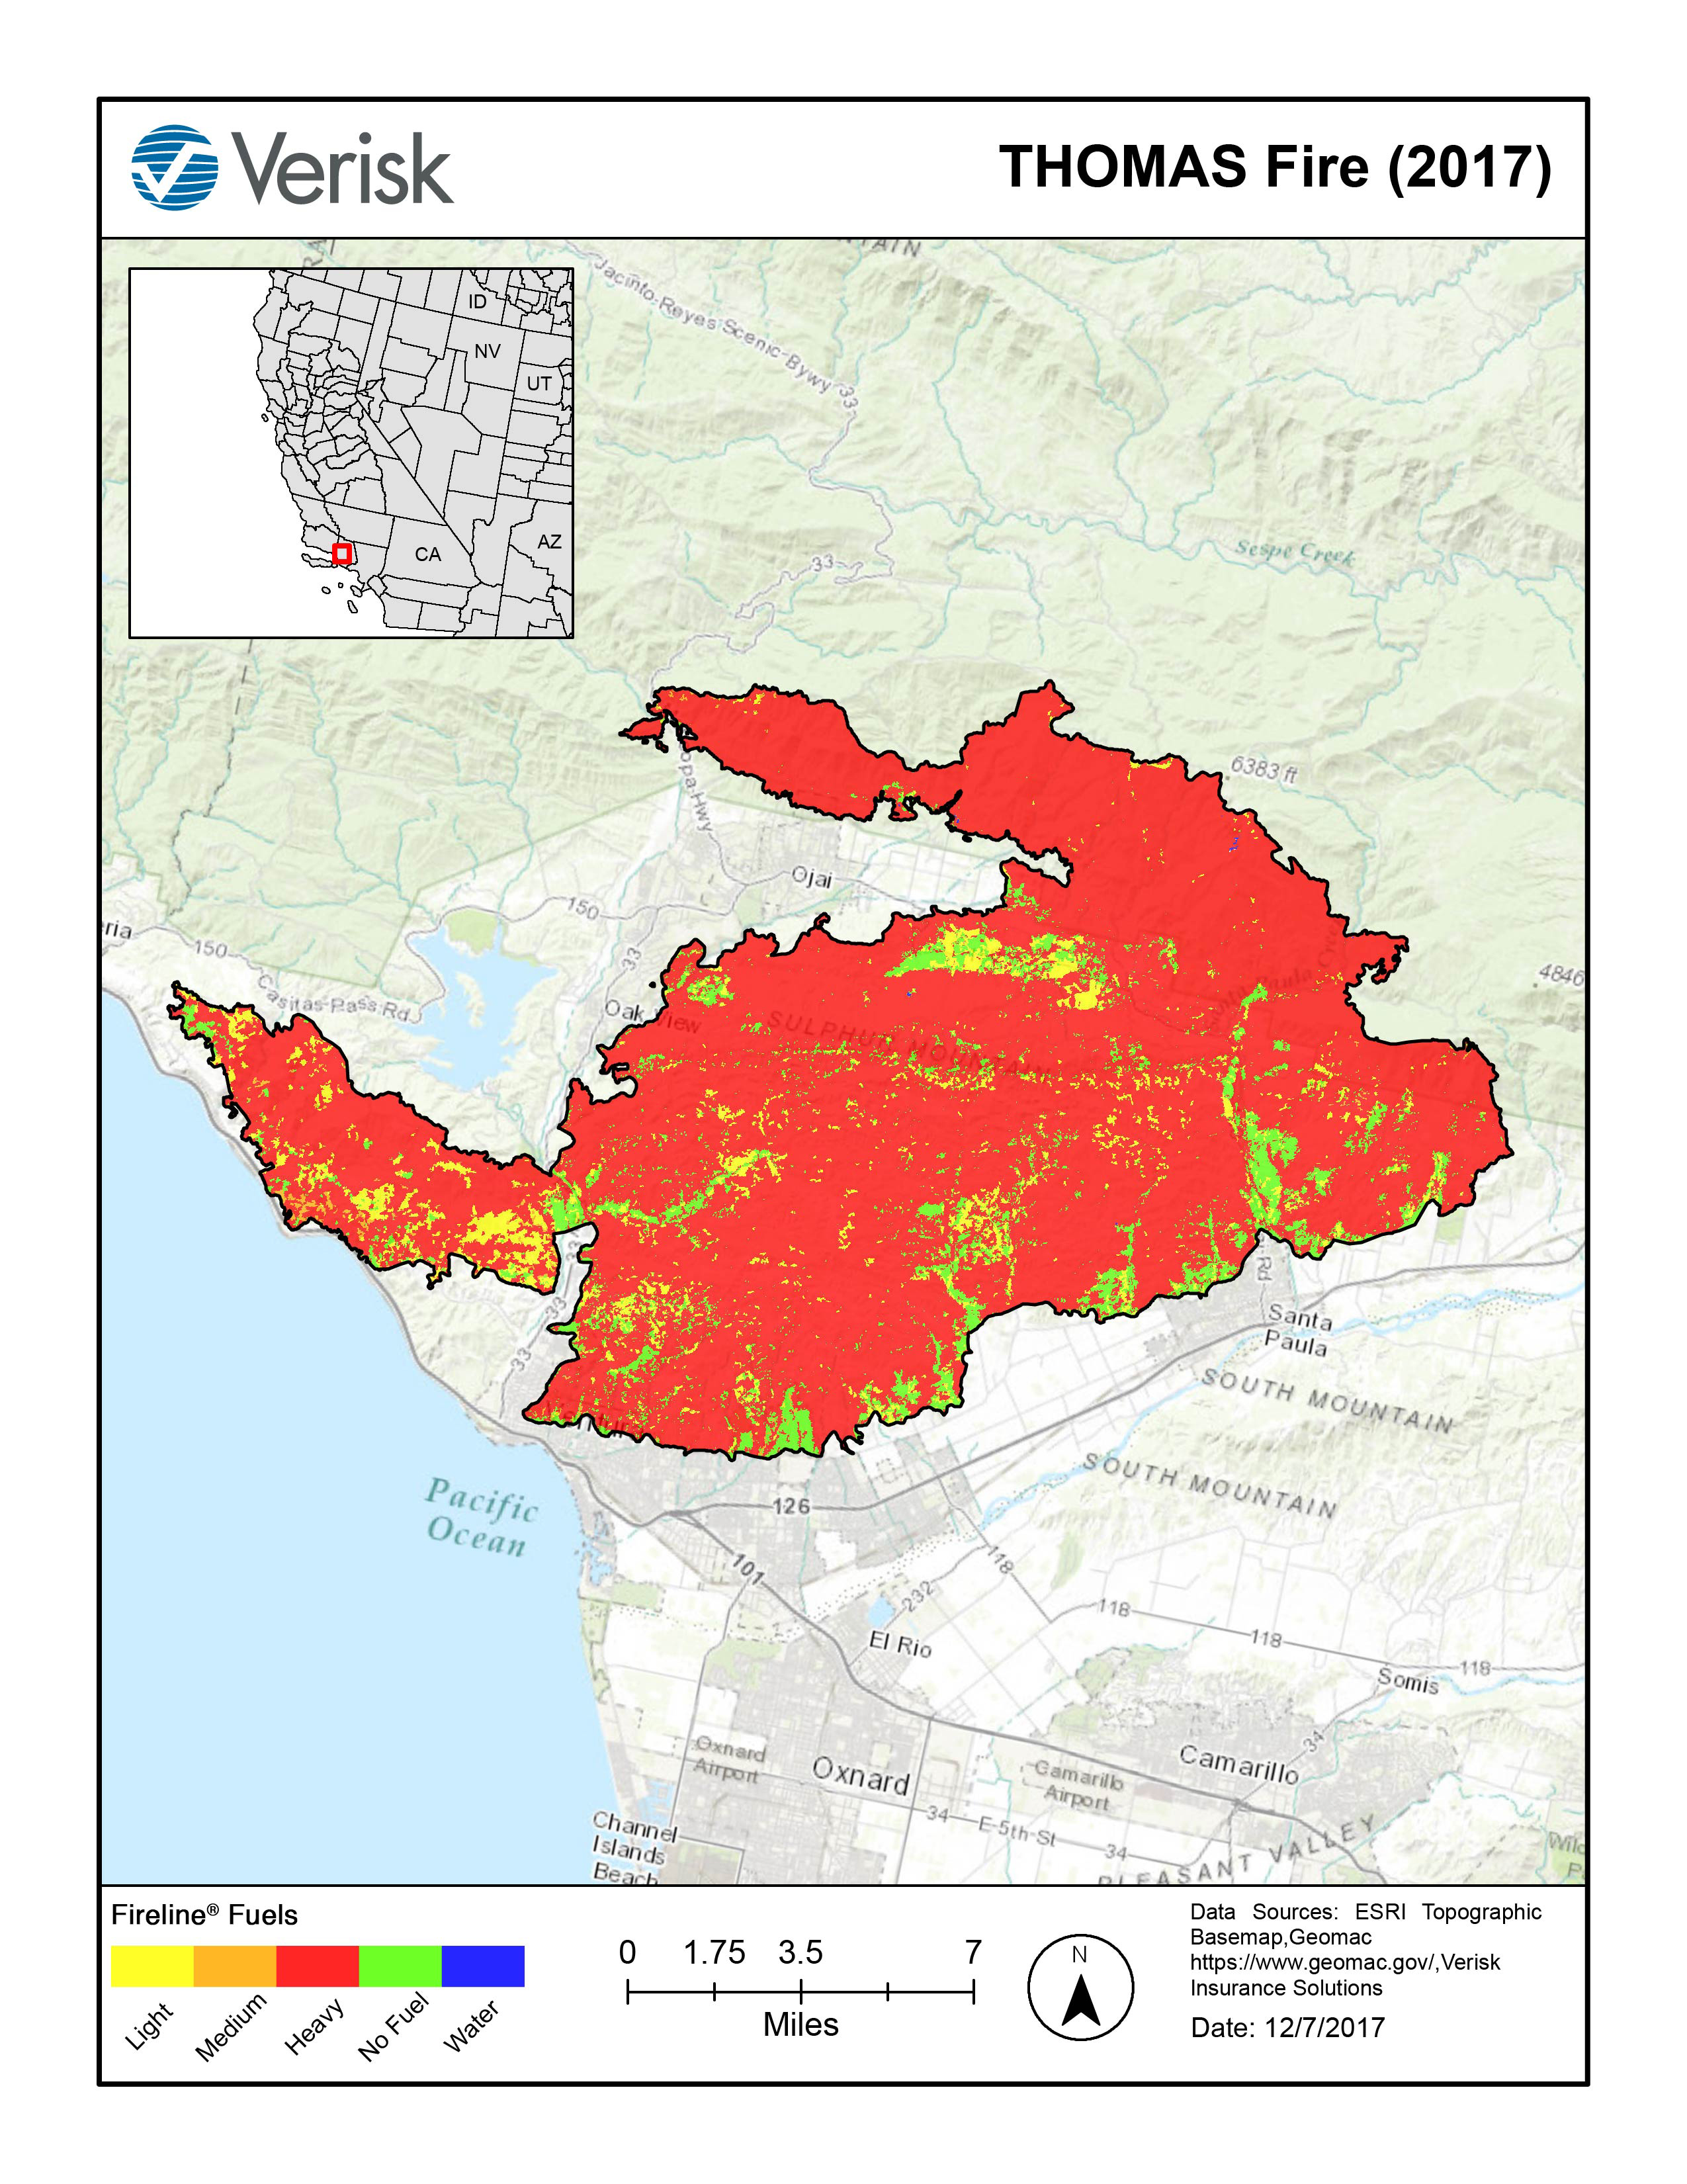 Verisk 96 Of The Area In California Fire At High Or Extreme